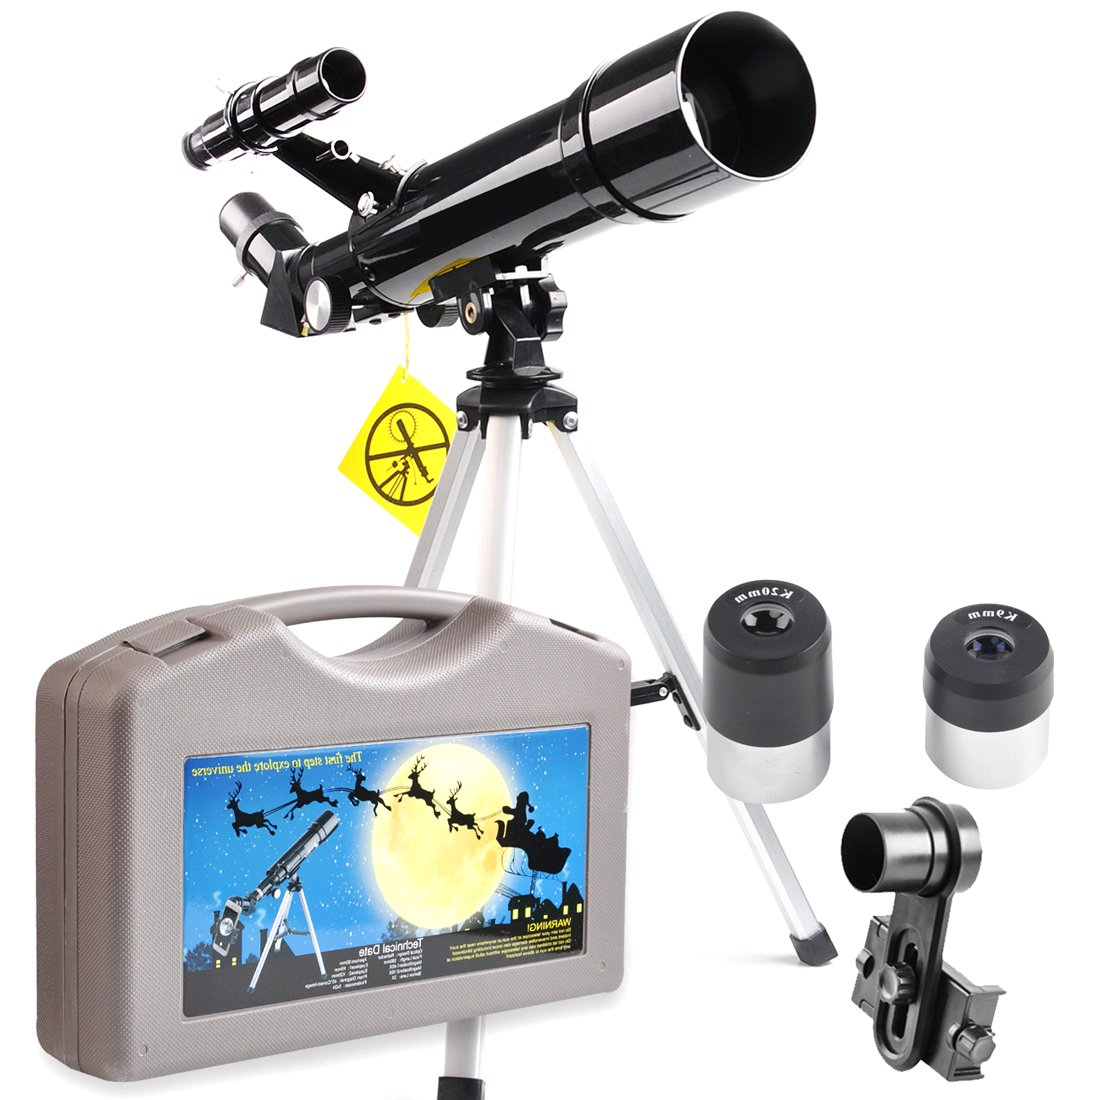 Telescope for Beginners and Kids-60 Refractor & Travel Scope with Carrying Case-60 x 360mm Telescope with Tripod and 10mm Eyepiece Phone Mount